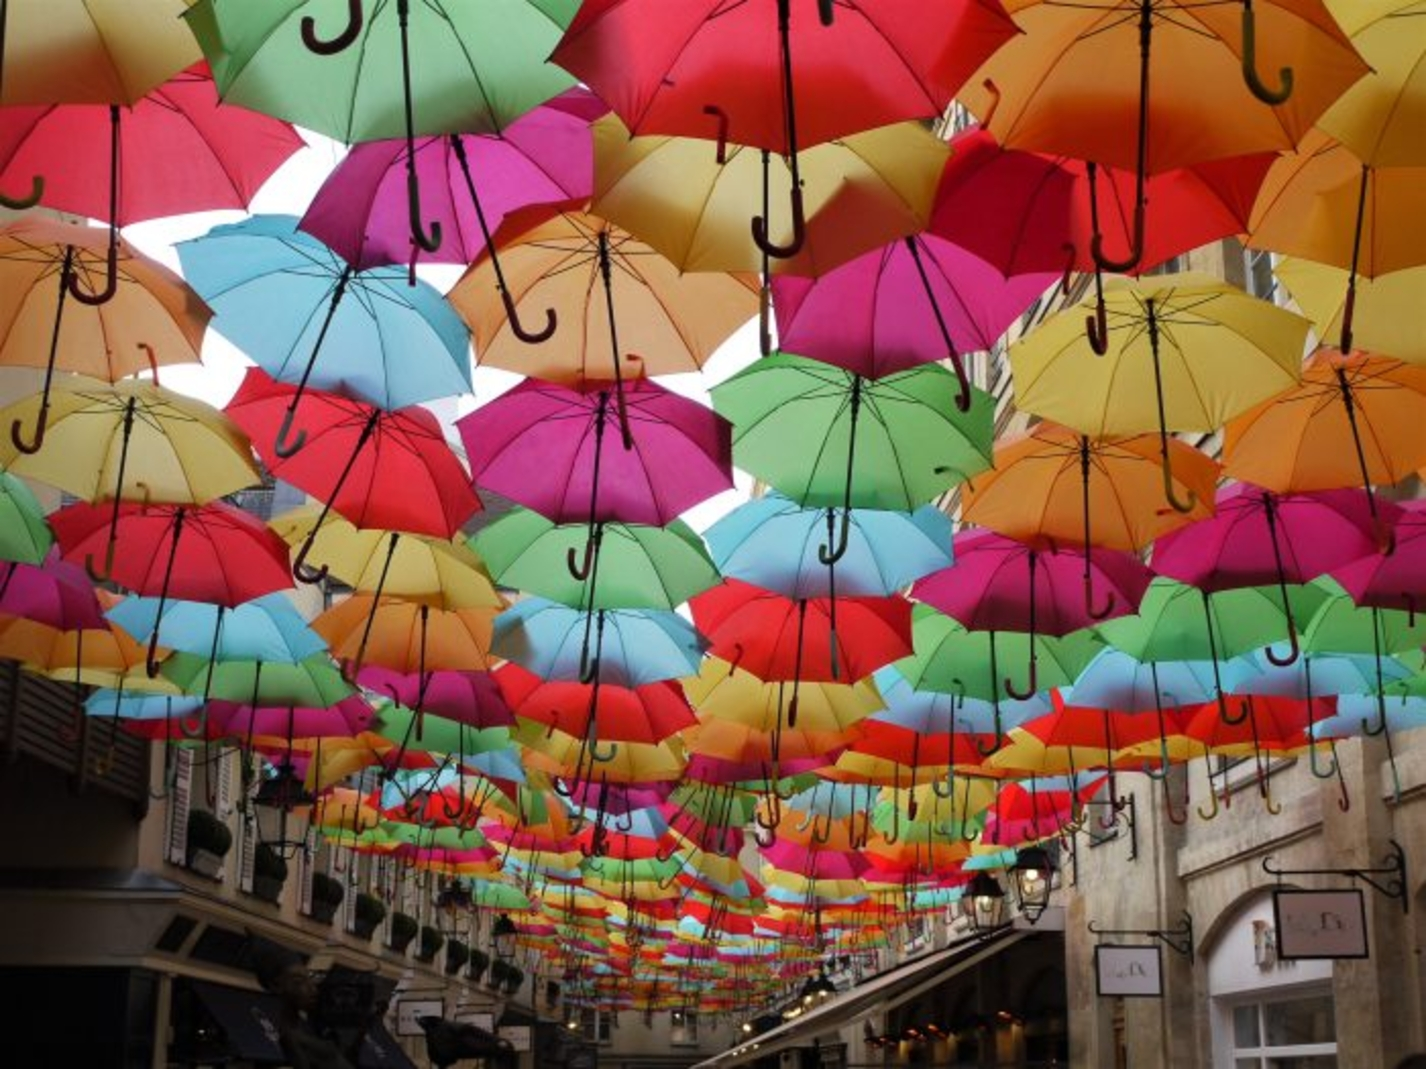 Only a few weeks to see the colorful umbrellas of the Village Royal!